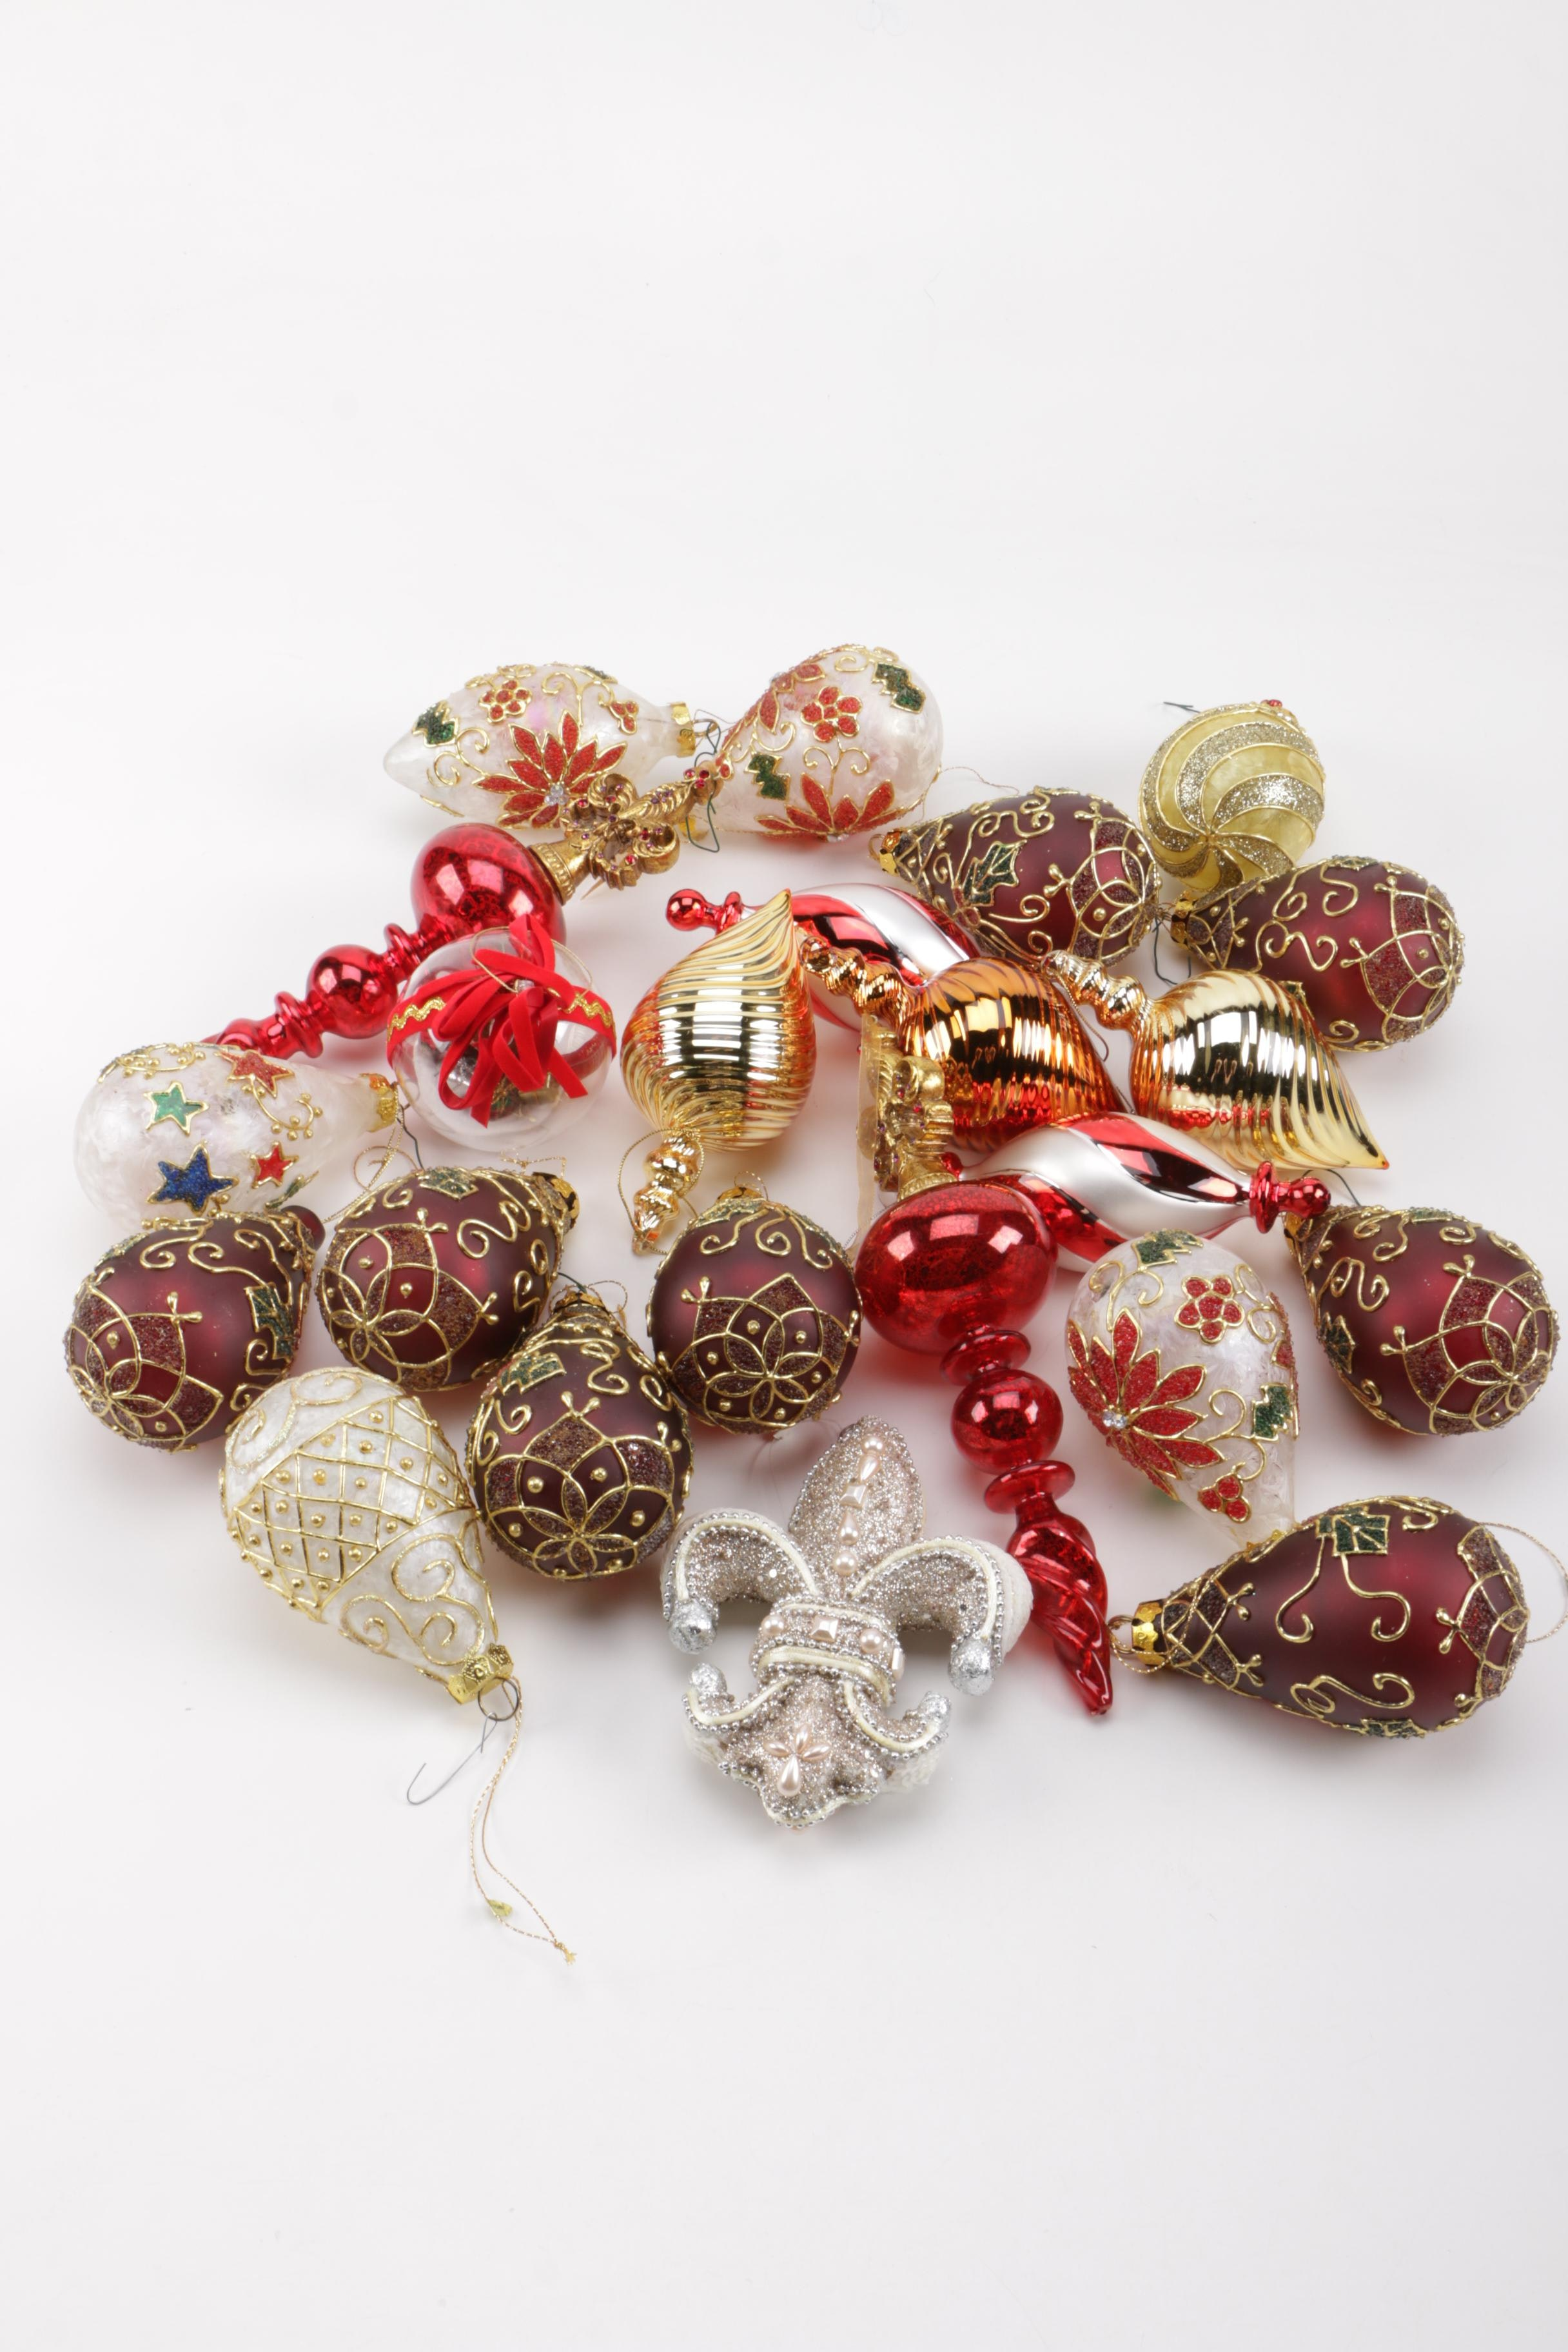 Large Collection of Christmas Ornaments